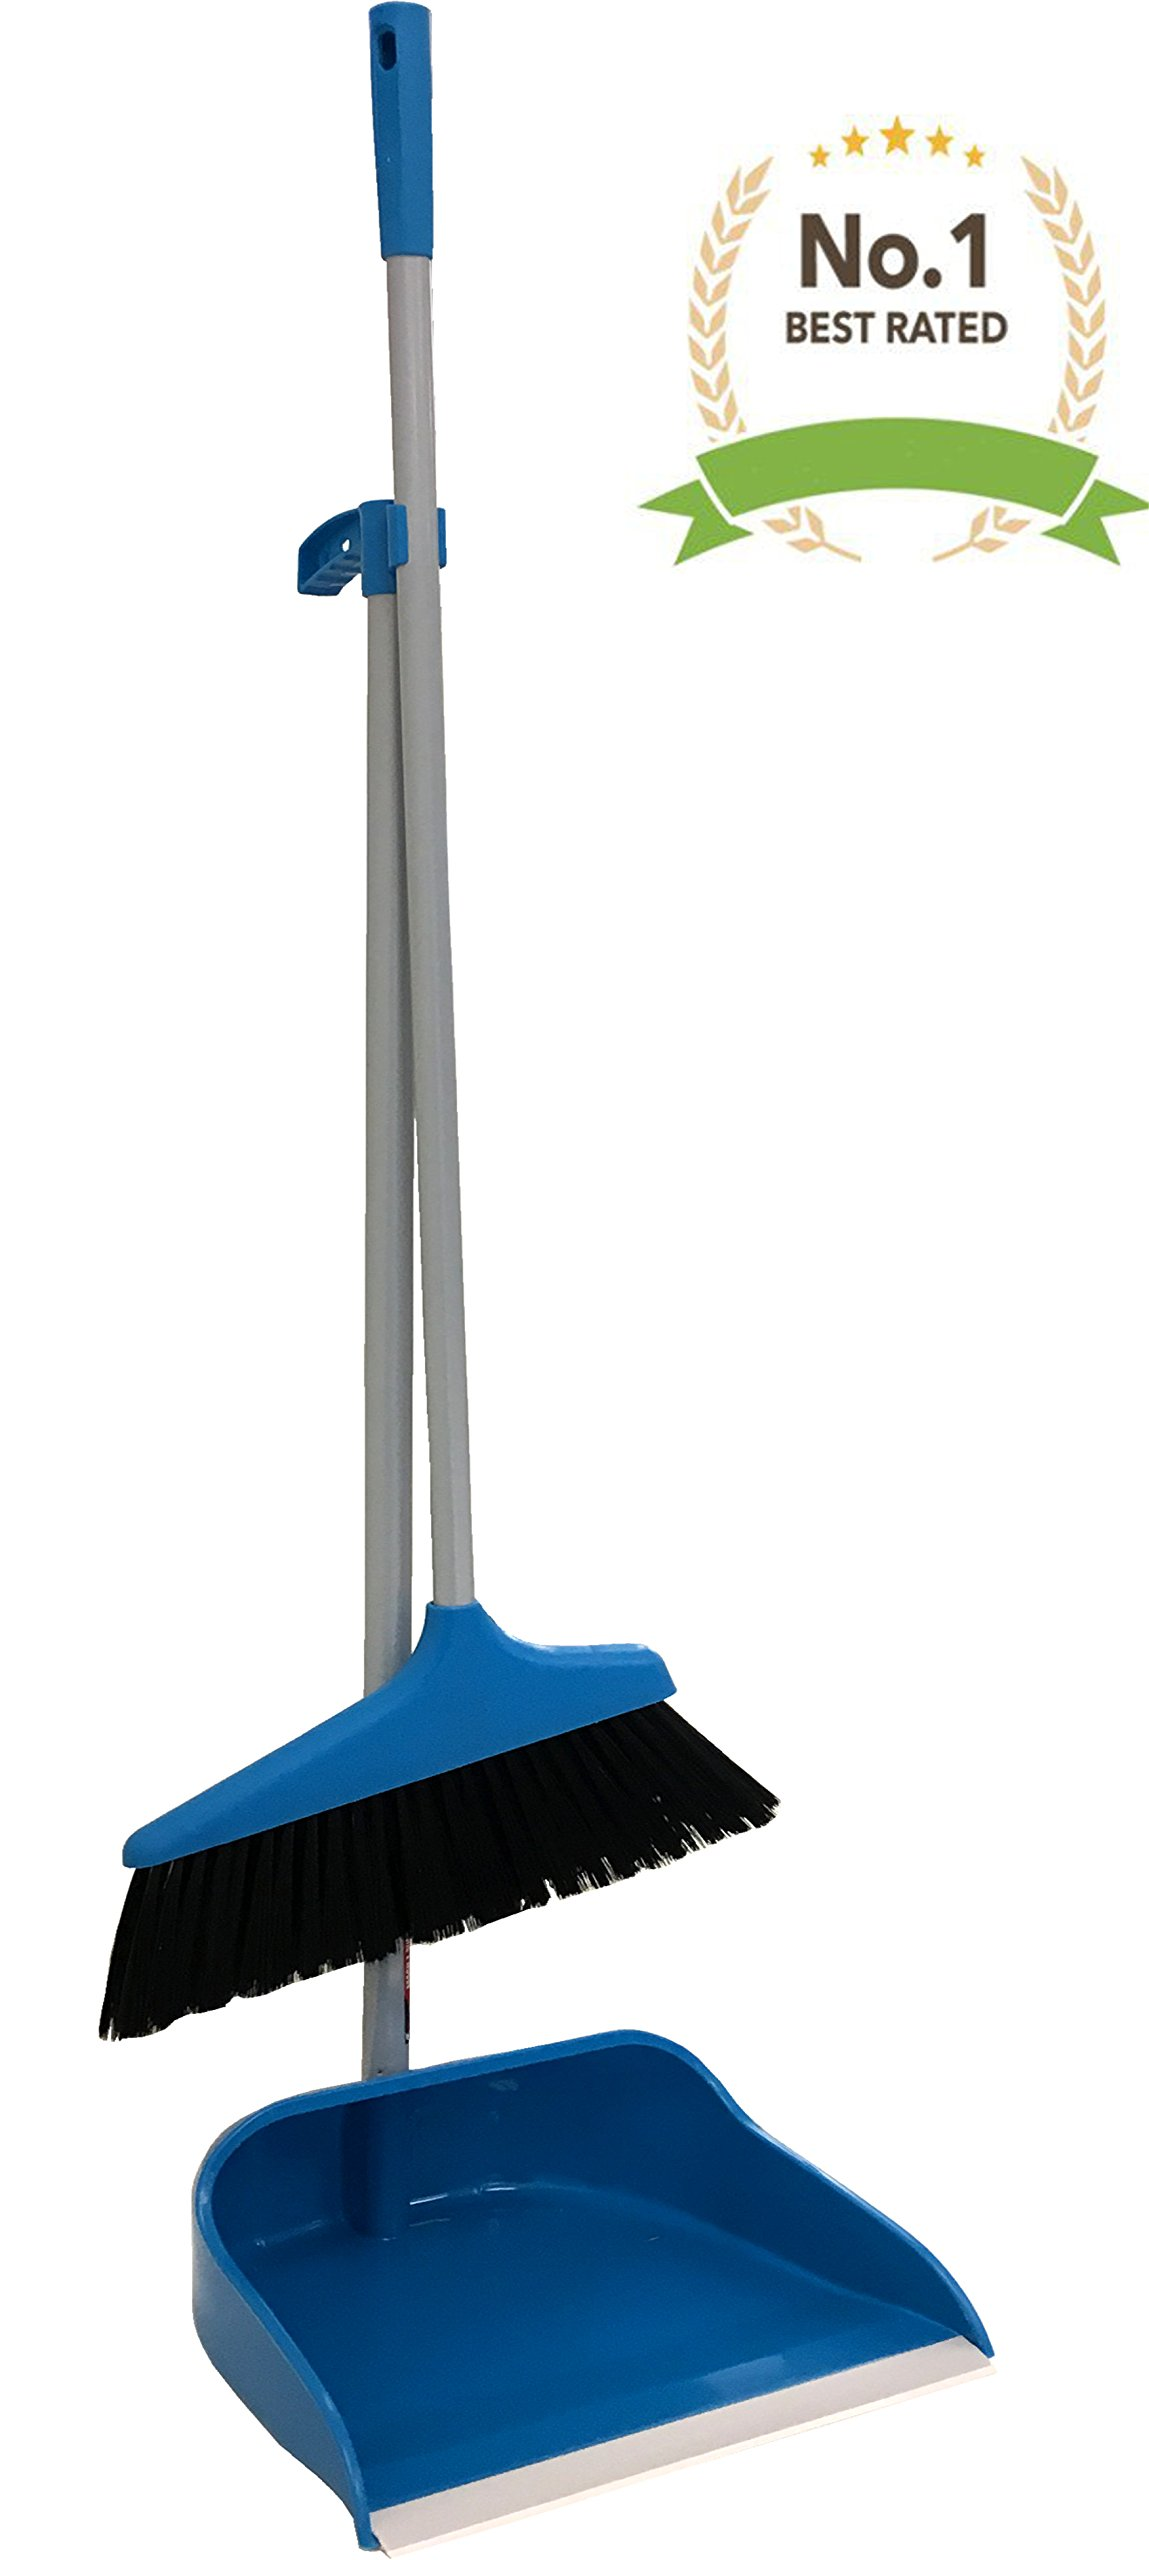 #1 Blue Upright Long Handle Dustpan And Brush Broom Set Lobby Home Modern Comfort Grip - Flexible & Durable Sweeper